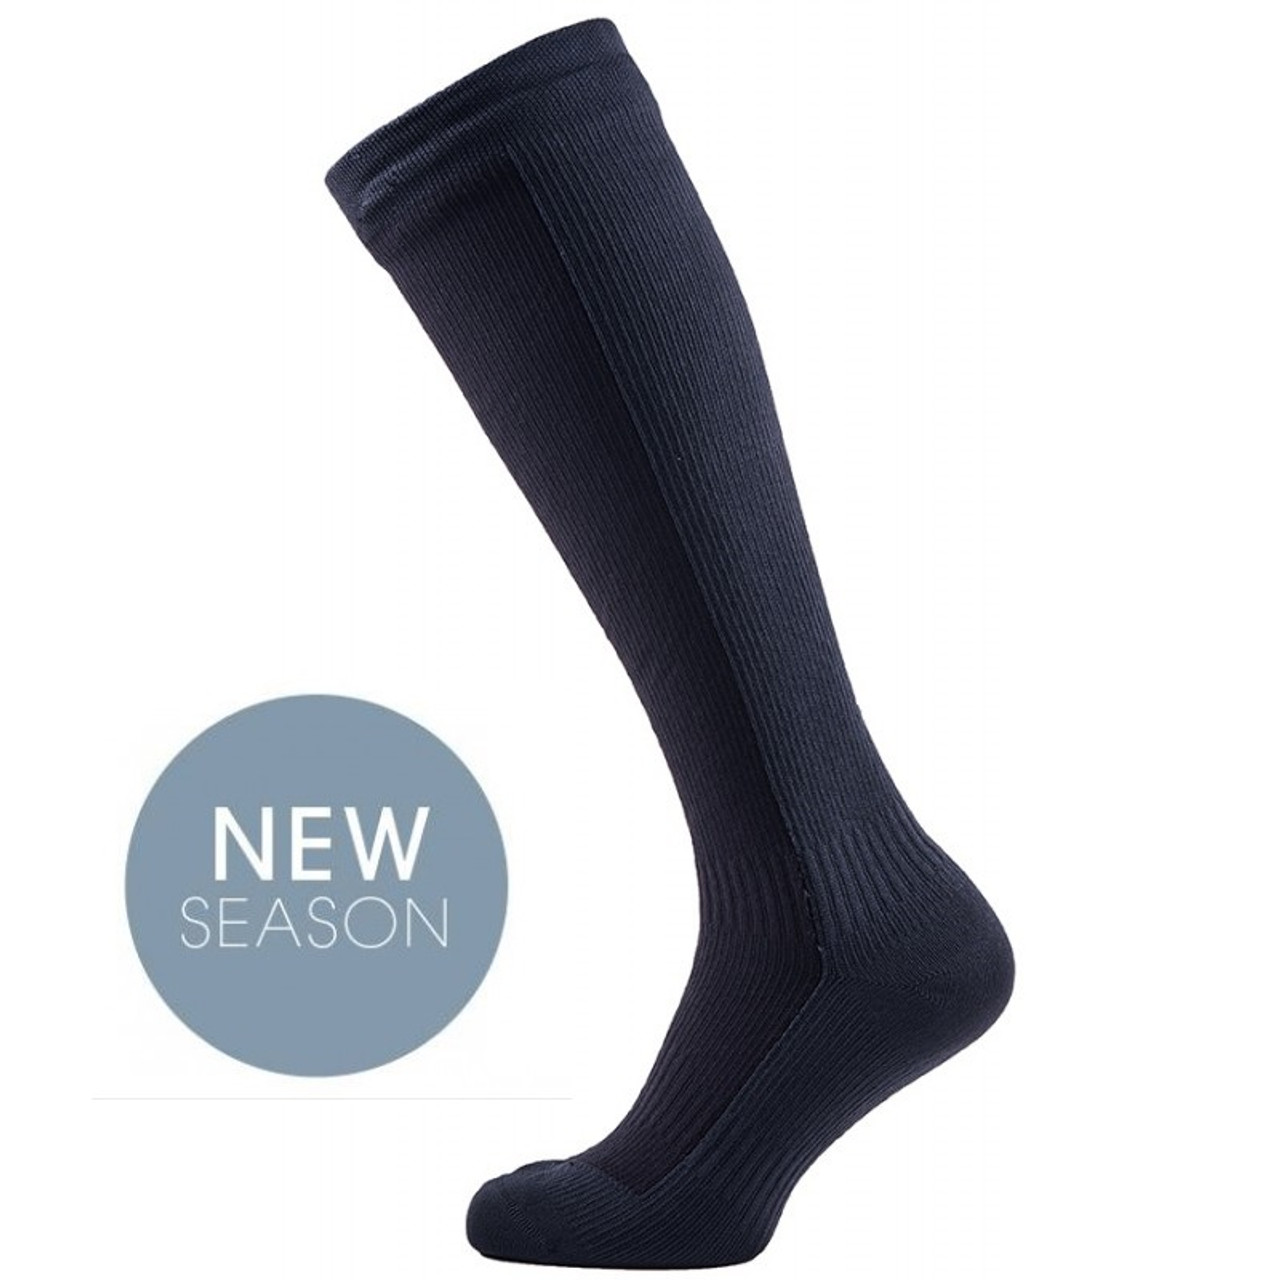 c272e27bfca Sealskinz Waterproof Socks are the ideal purchase for window cleaning as  well as a variety of